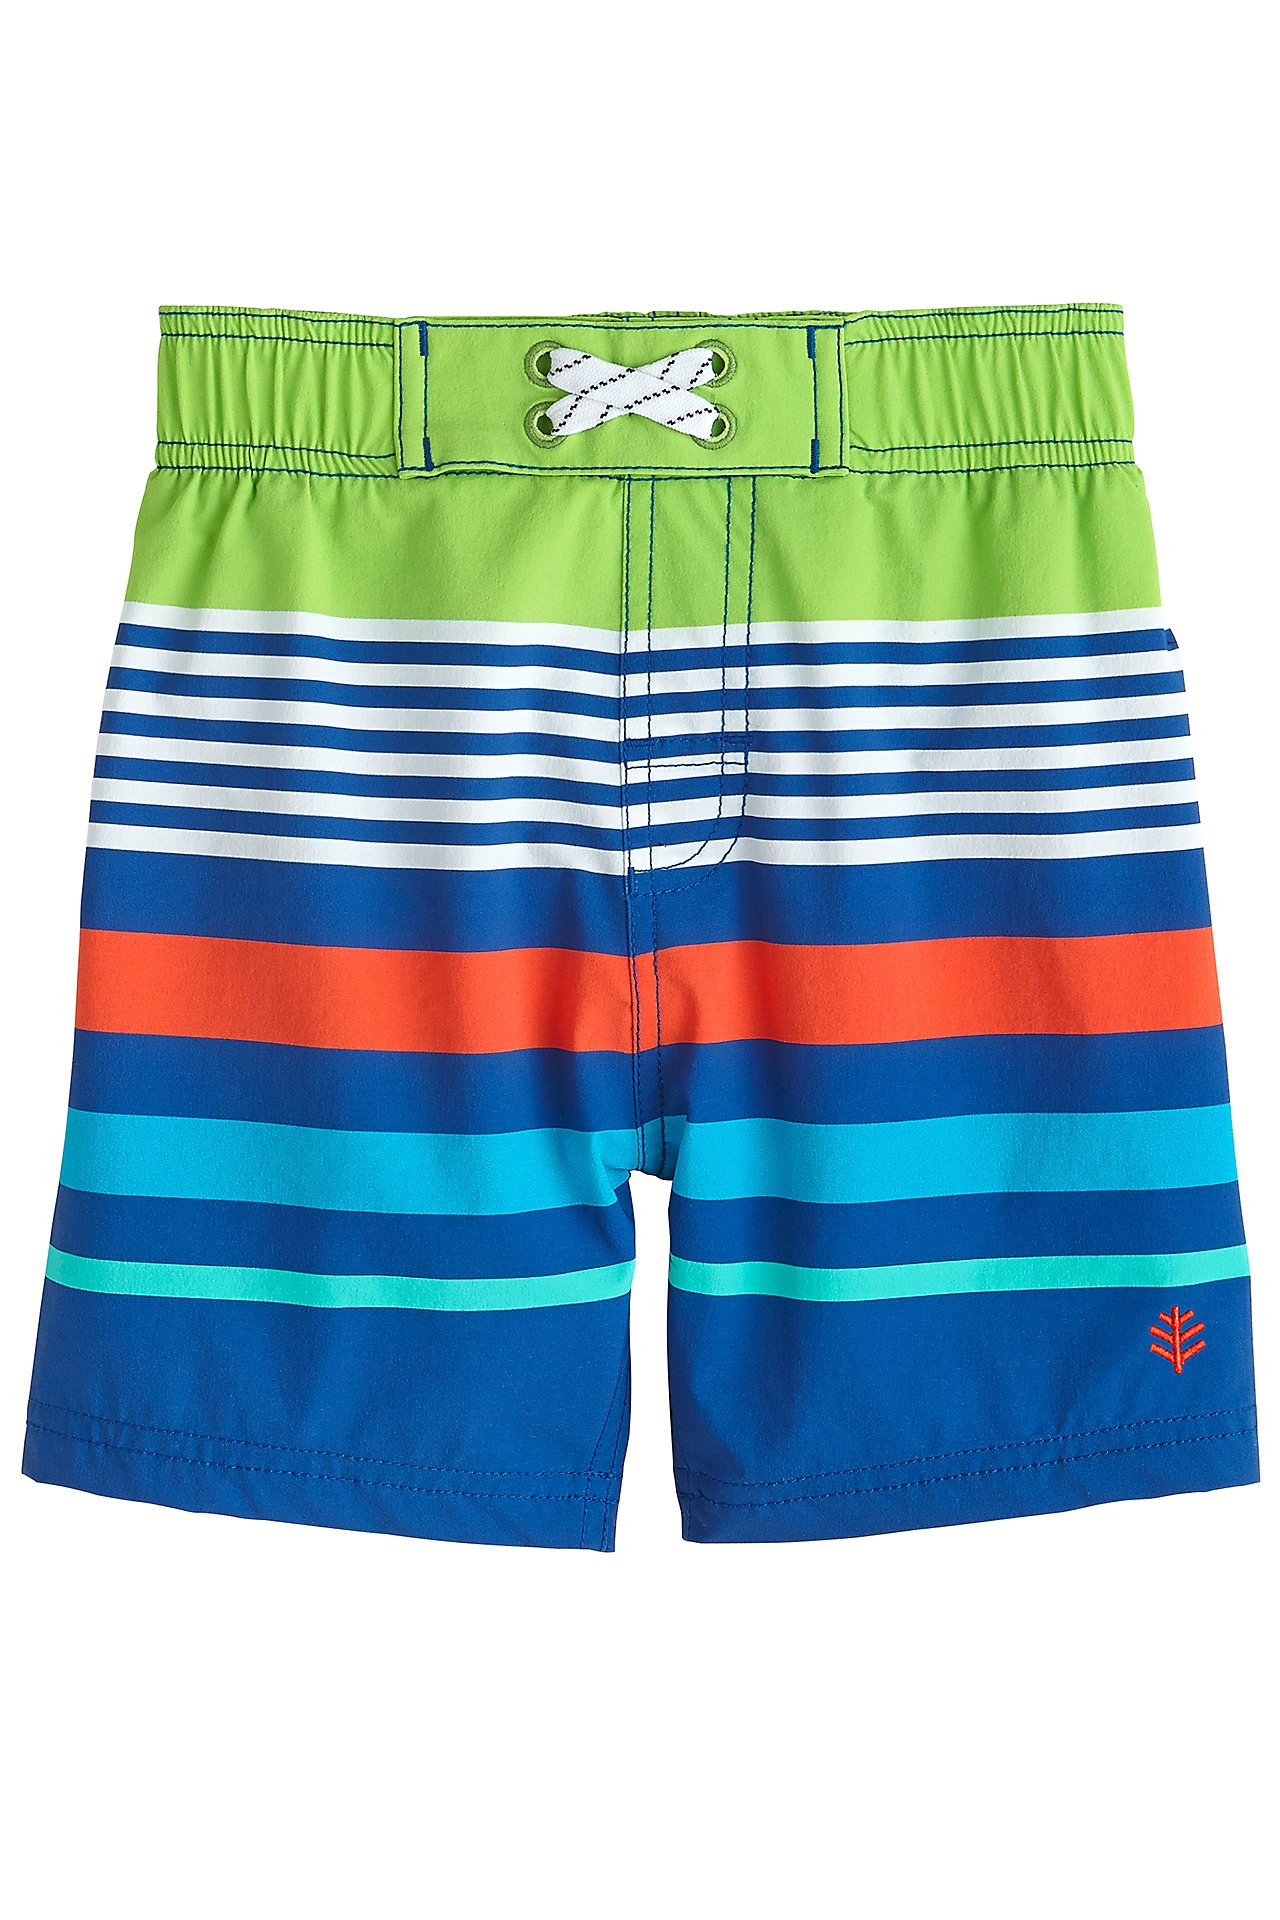 40aa4d6025 Galleon - Coolibar UPF 50+ Baby Boys' Island Swim Trunks - Sun Protective (6 -12 Months- High Tide Stripe)